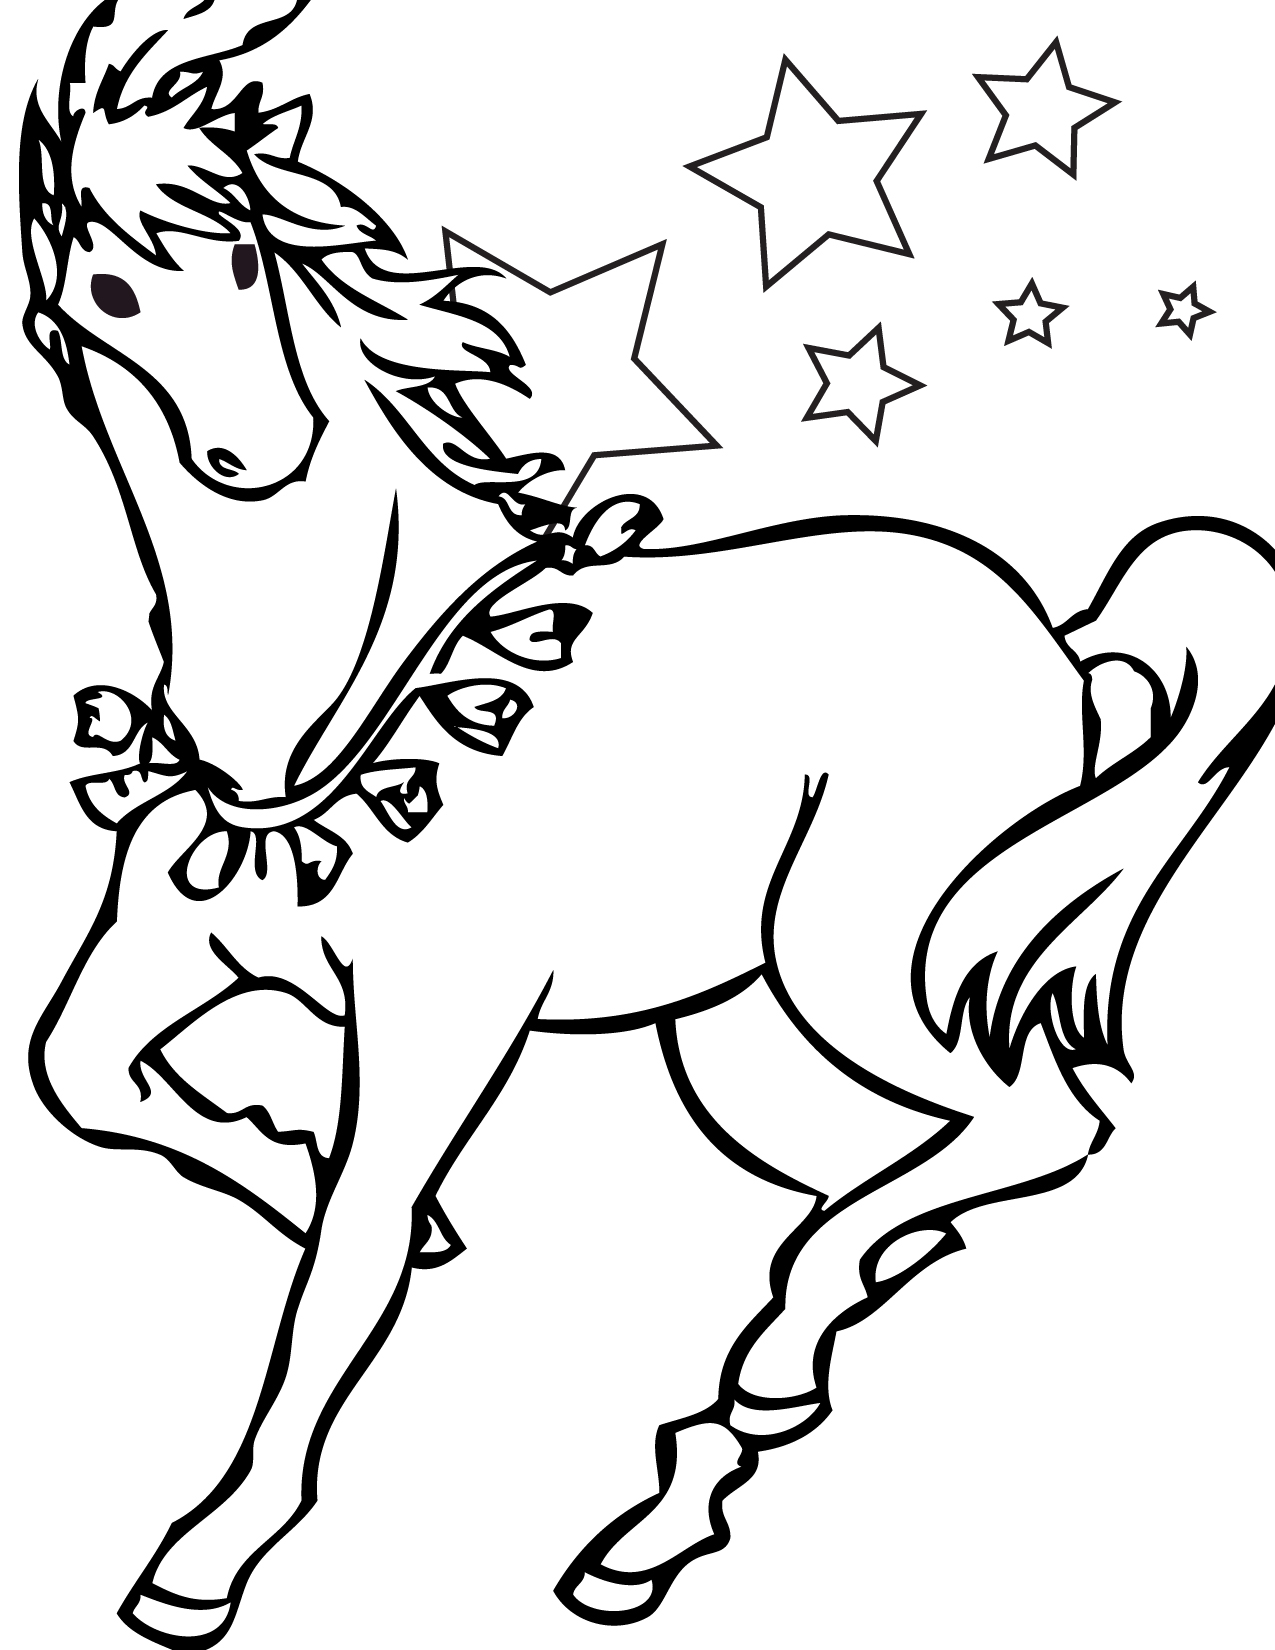 horse coloring pages for kids realistic horse coloring pages to download and print for free coloring for horse pages kids